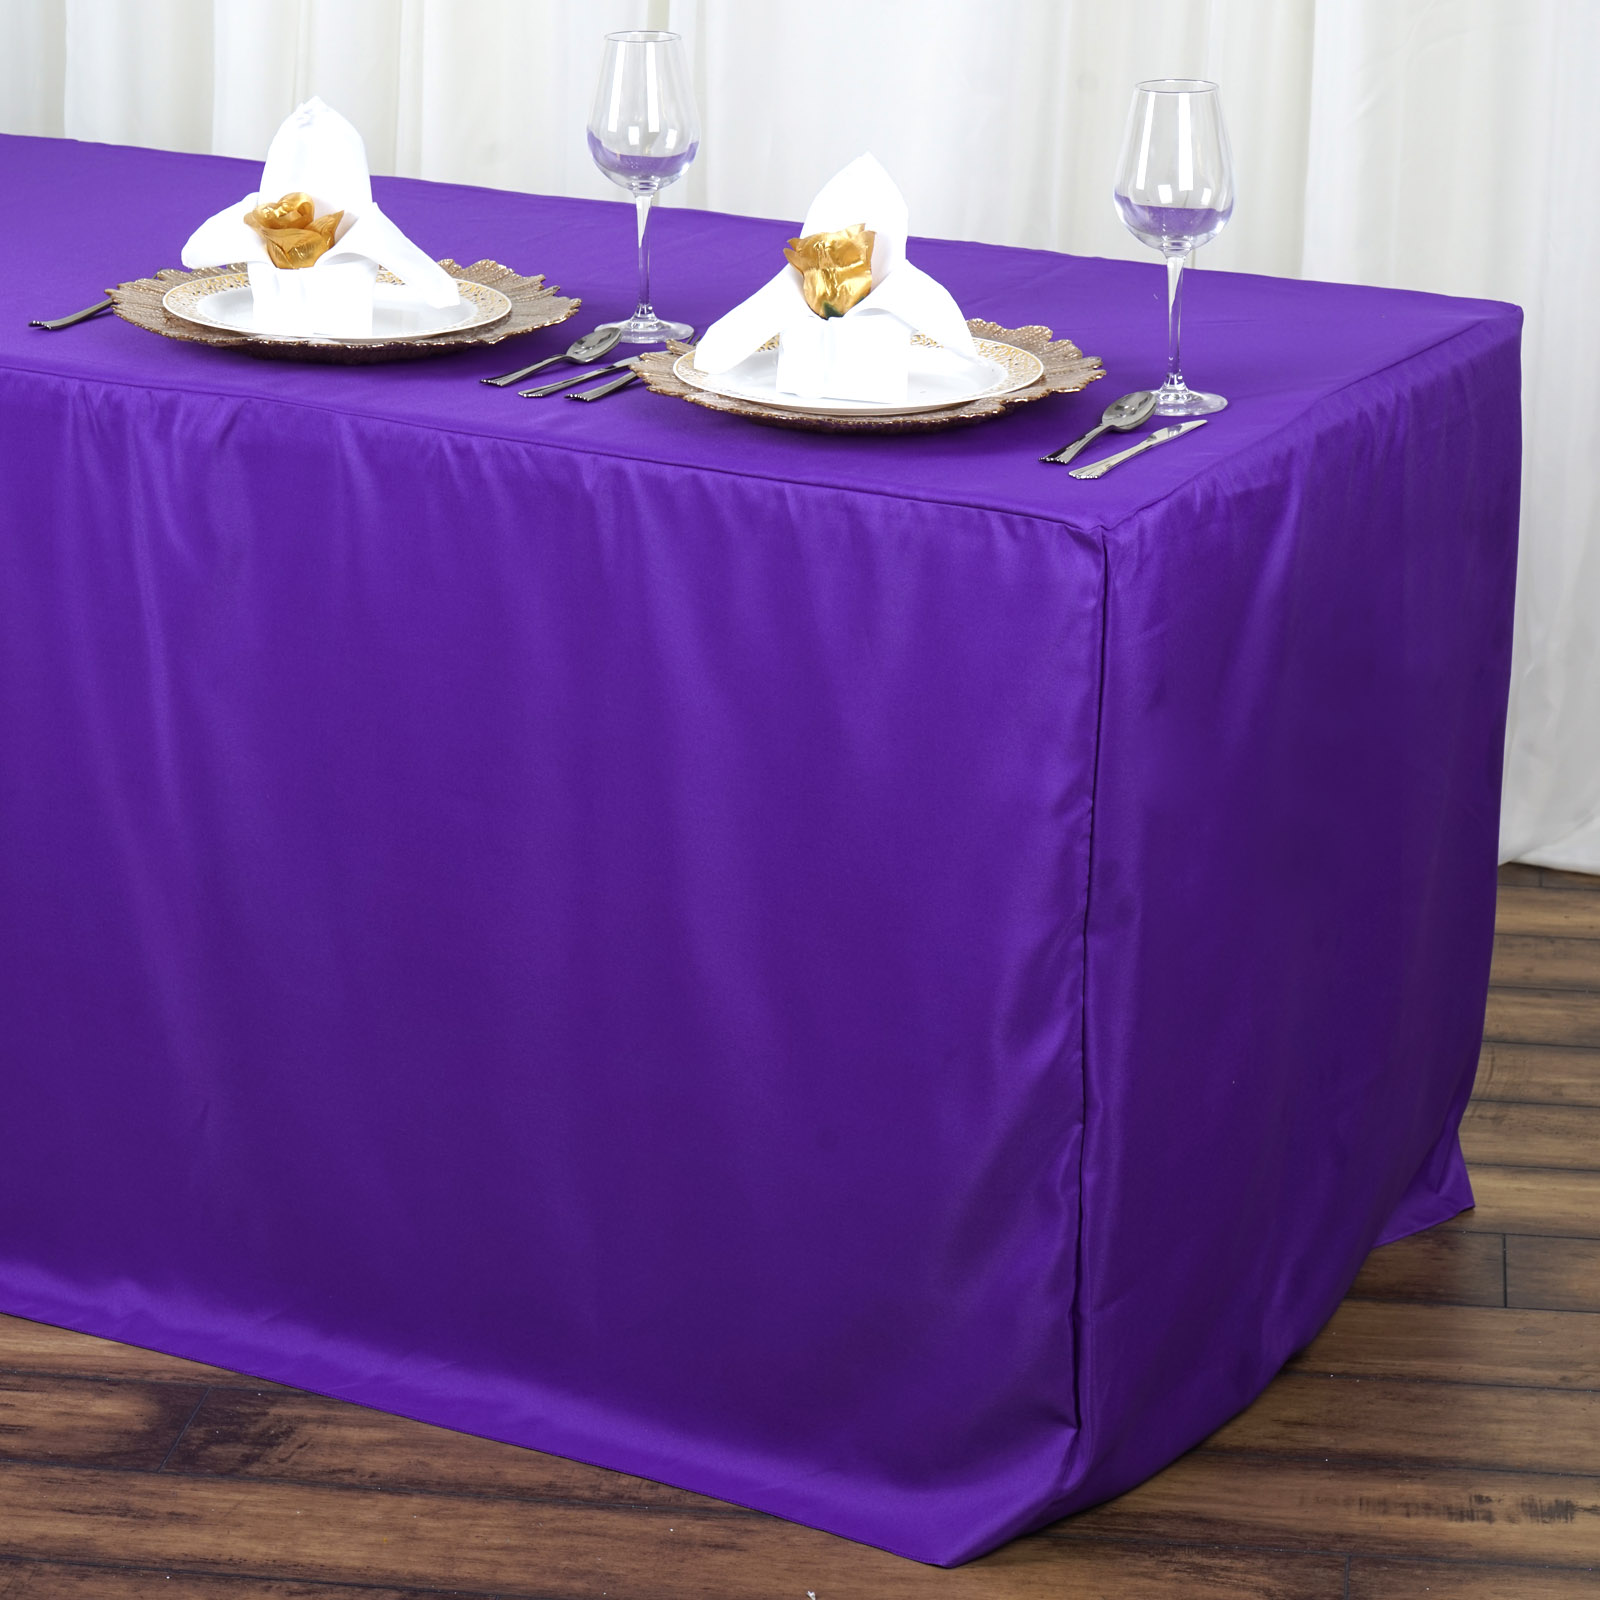 BalsaCircle 6 feet Fitted Polyester Tablecloth Table Linens Wedding Party by